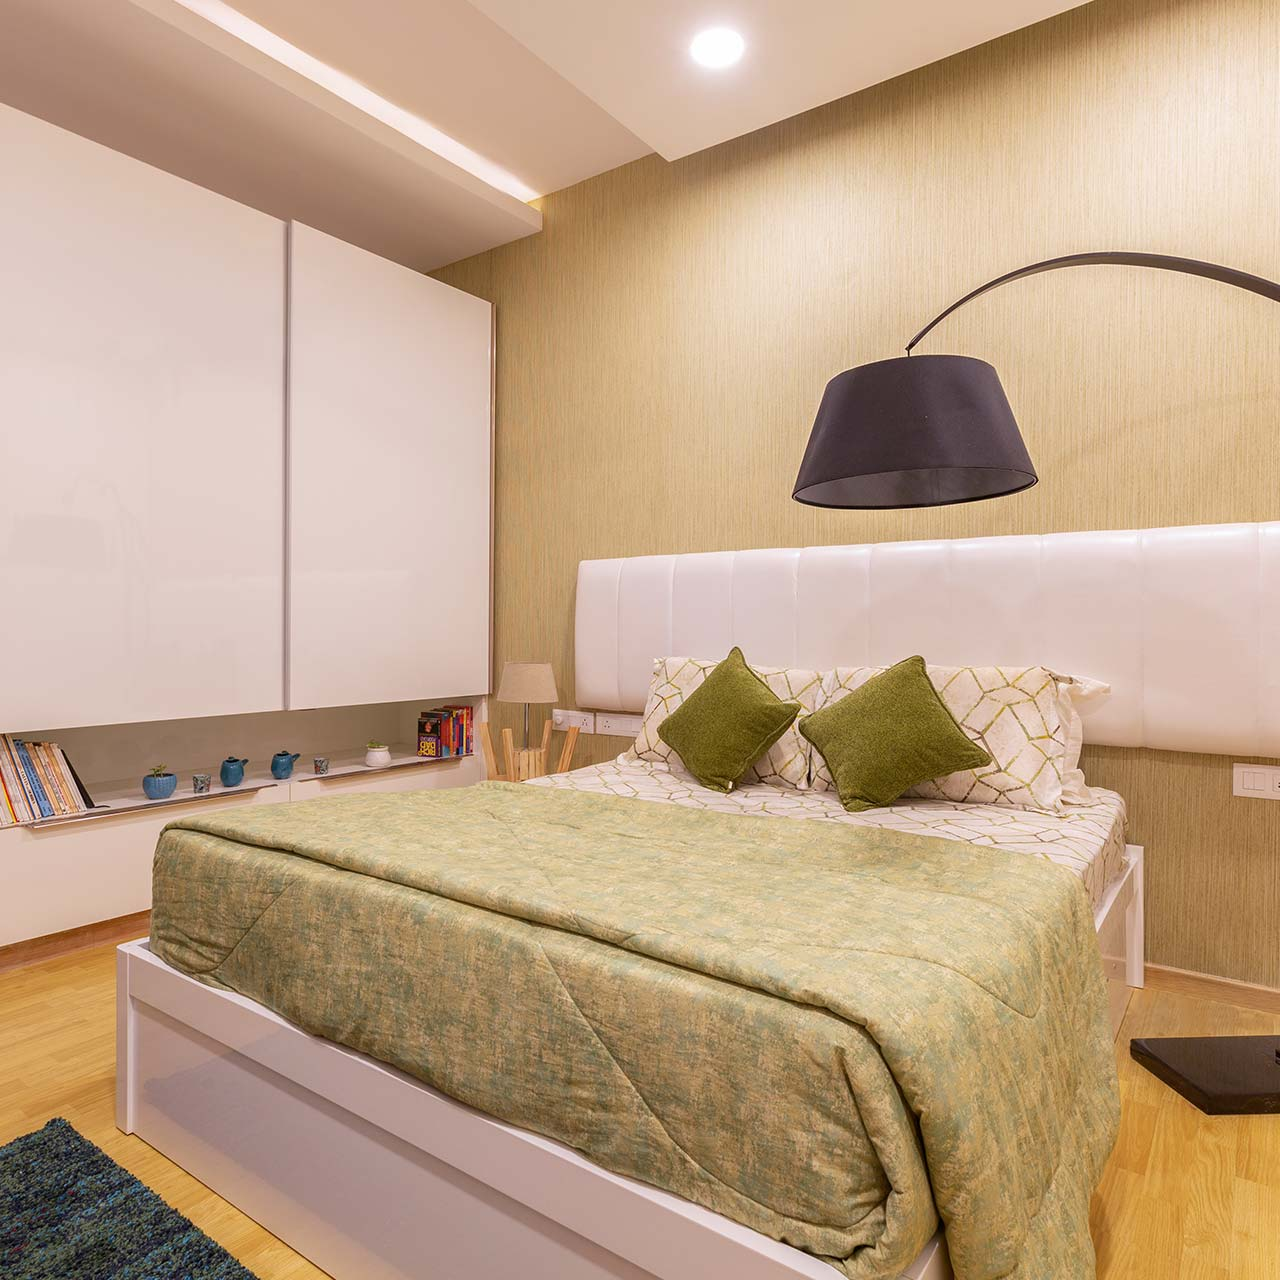 Pick The Right Bed And Mattress For Master Bedroom